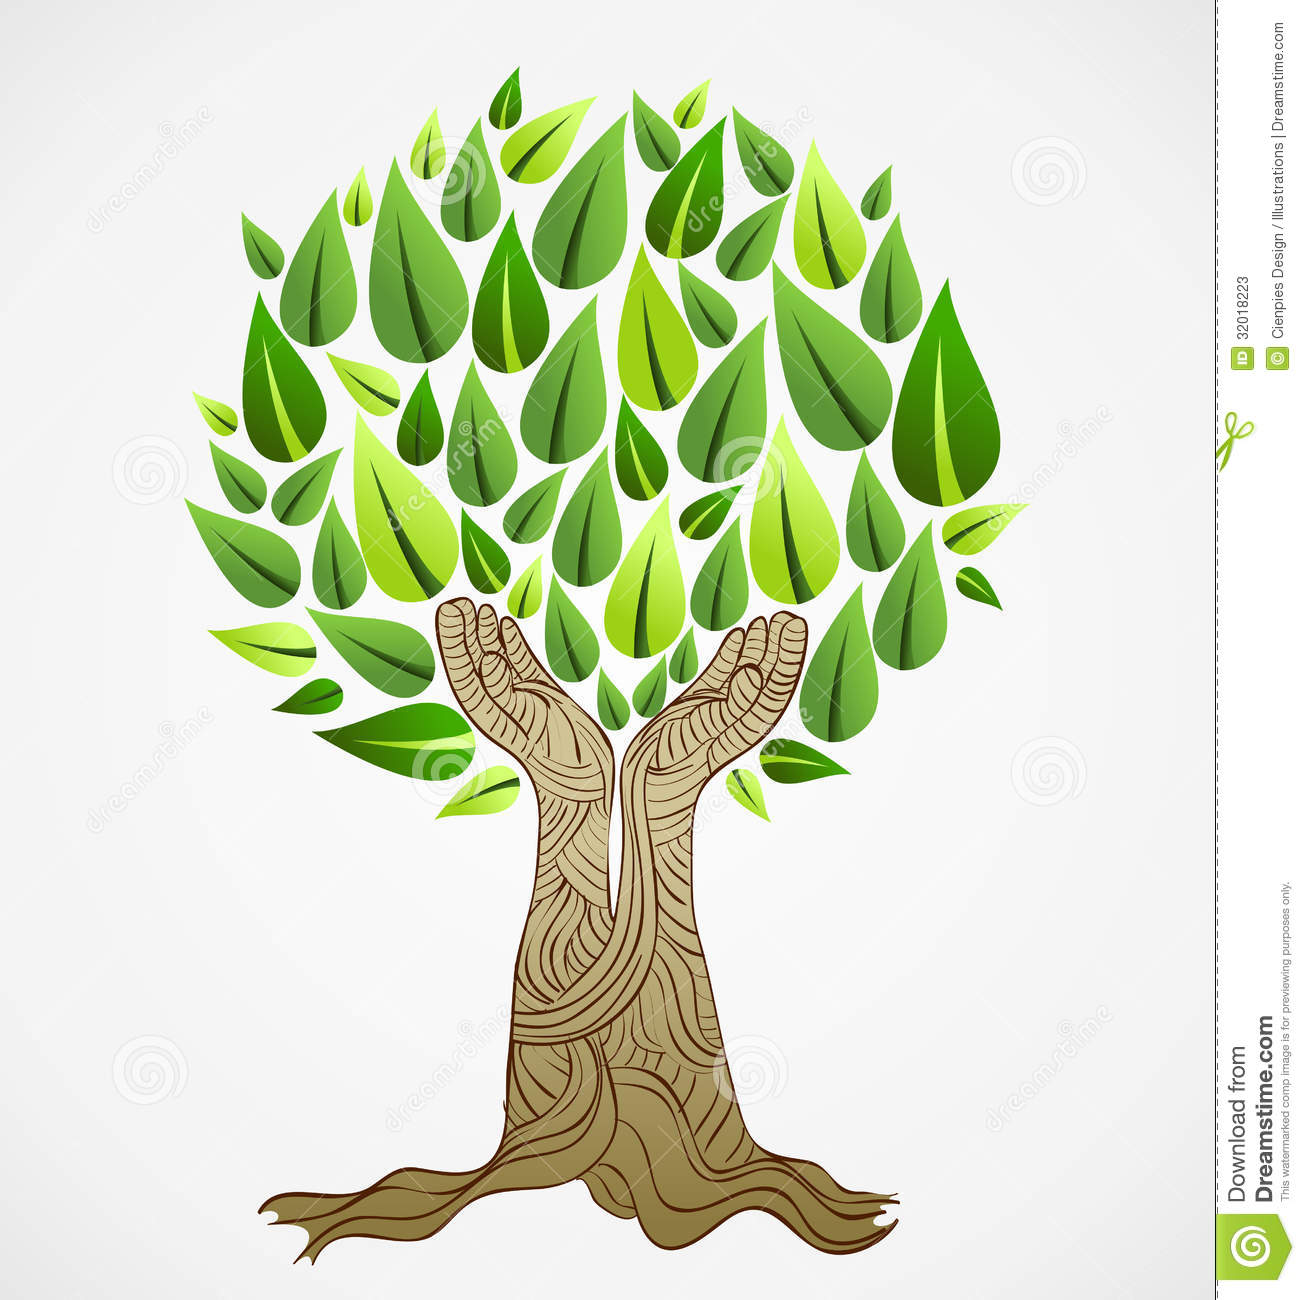 Green concept tree stock vector. Illustration of crown - 32018223